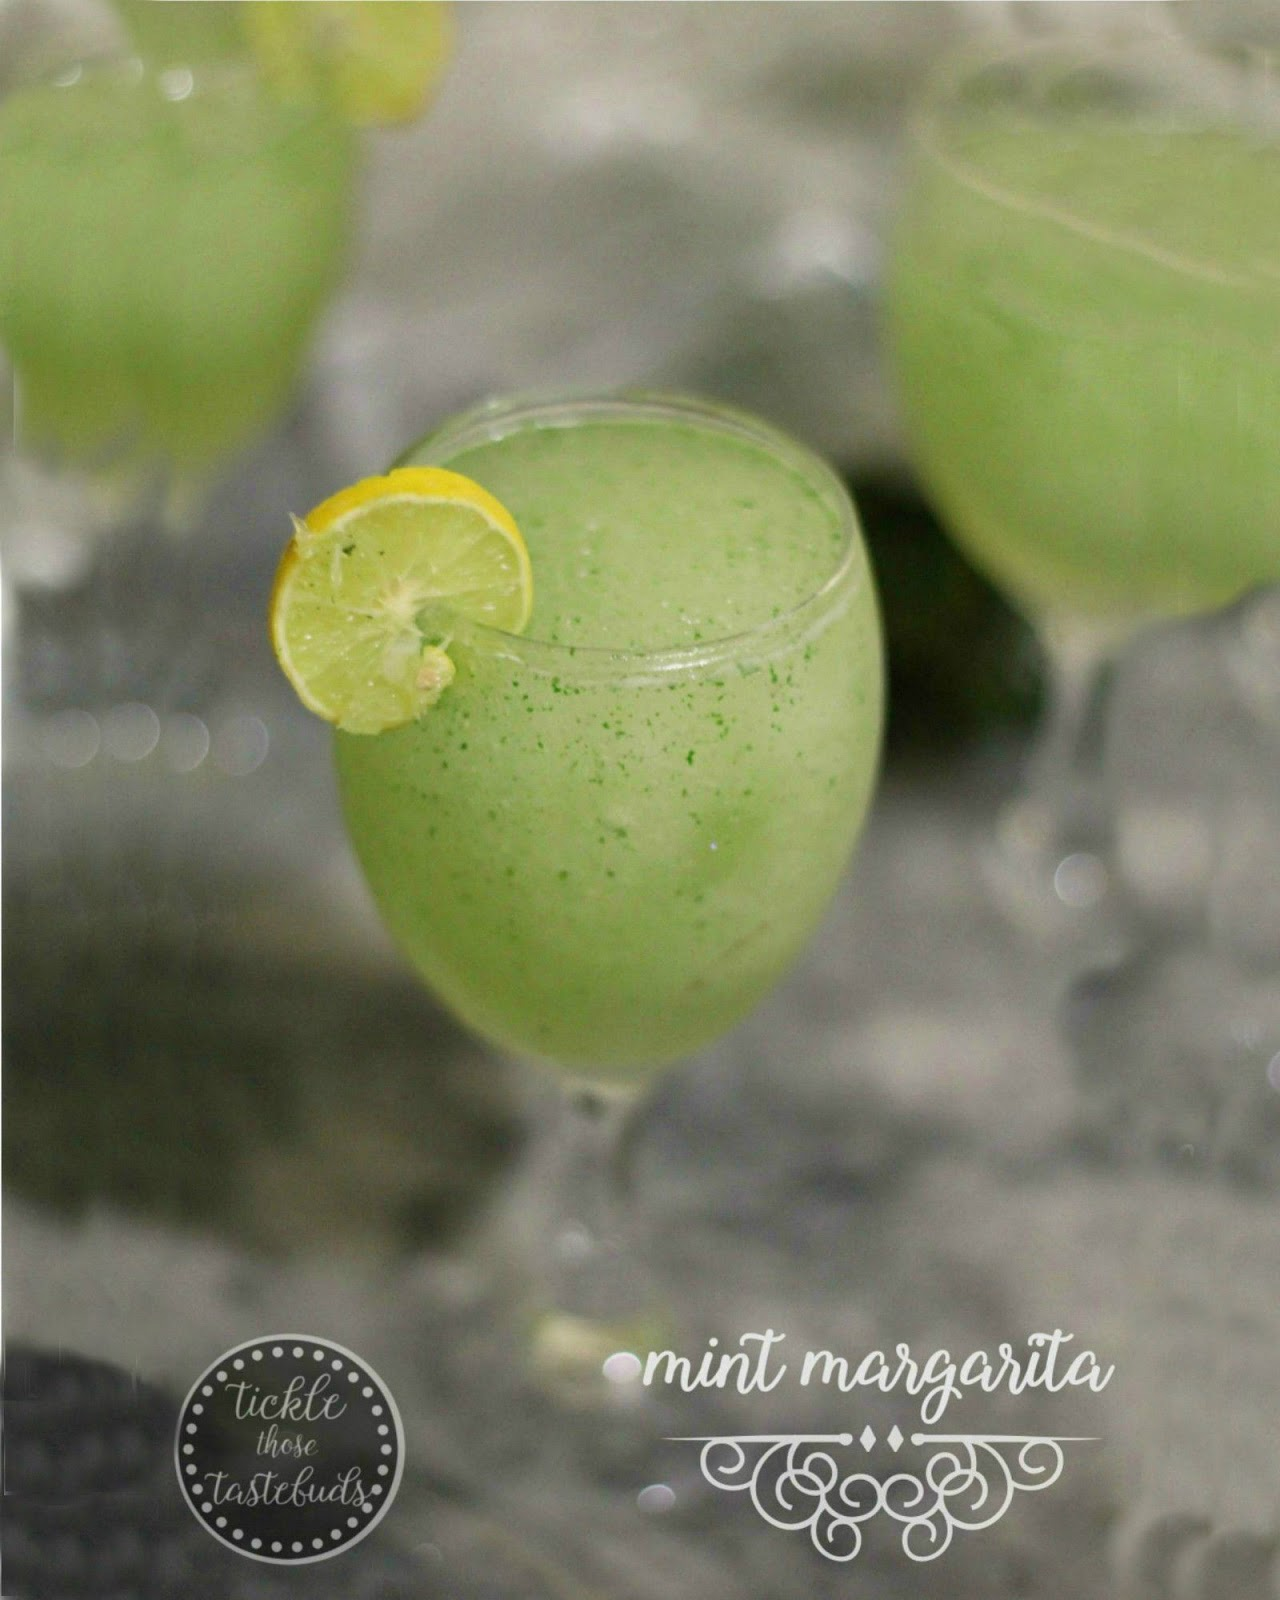 Mint-Margarita-Tickle-those-Tastebuds